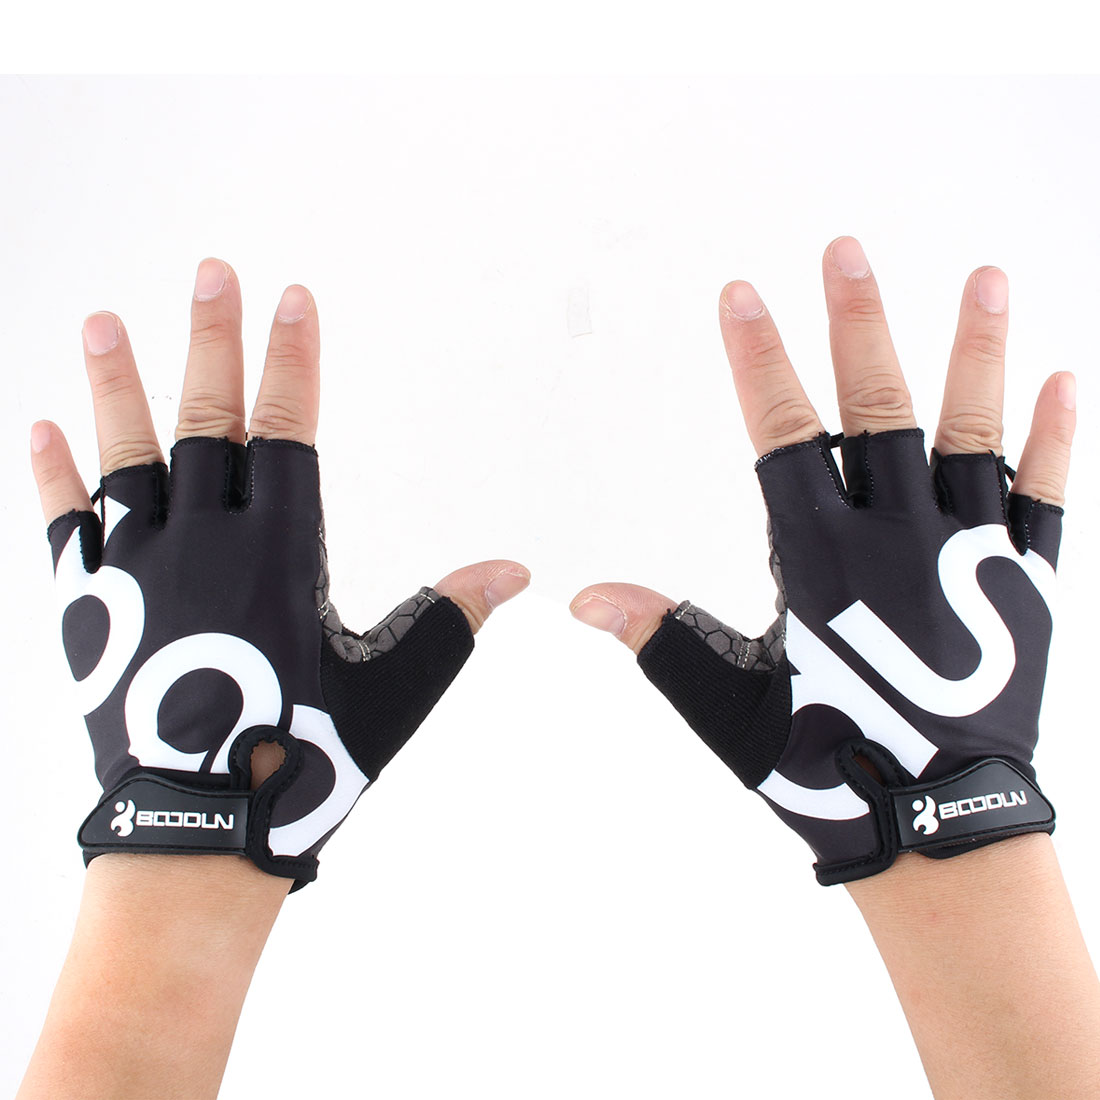 BOODUN Authorized Unisex Outdoor Sports Cycling Biking Exercise Adjustable Fitness Half Finger Gloves Black L Size Pair